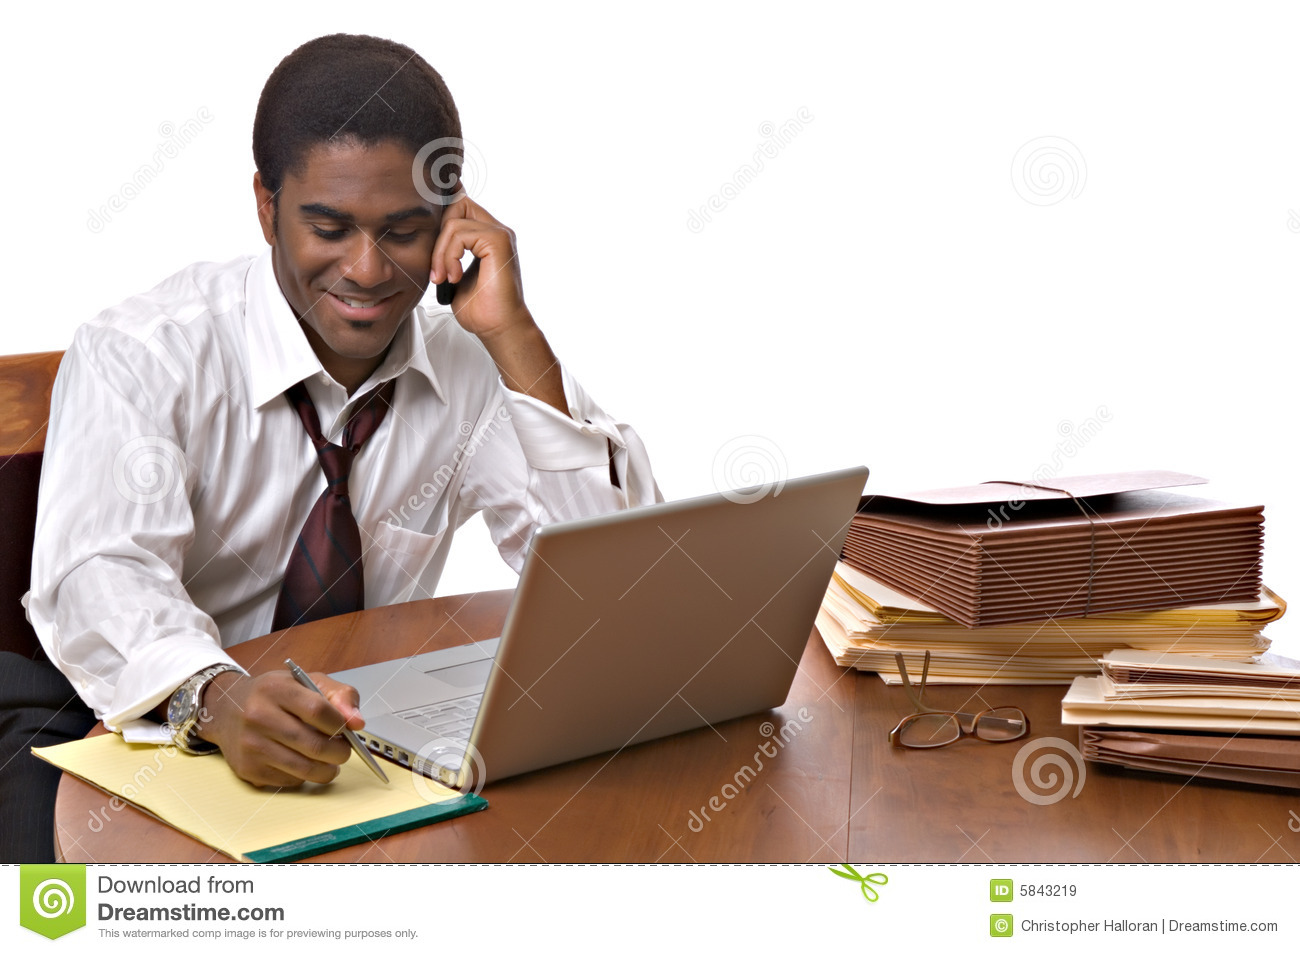 African-American businessman working on laptop